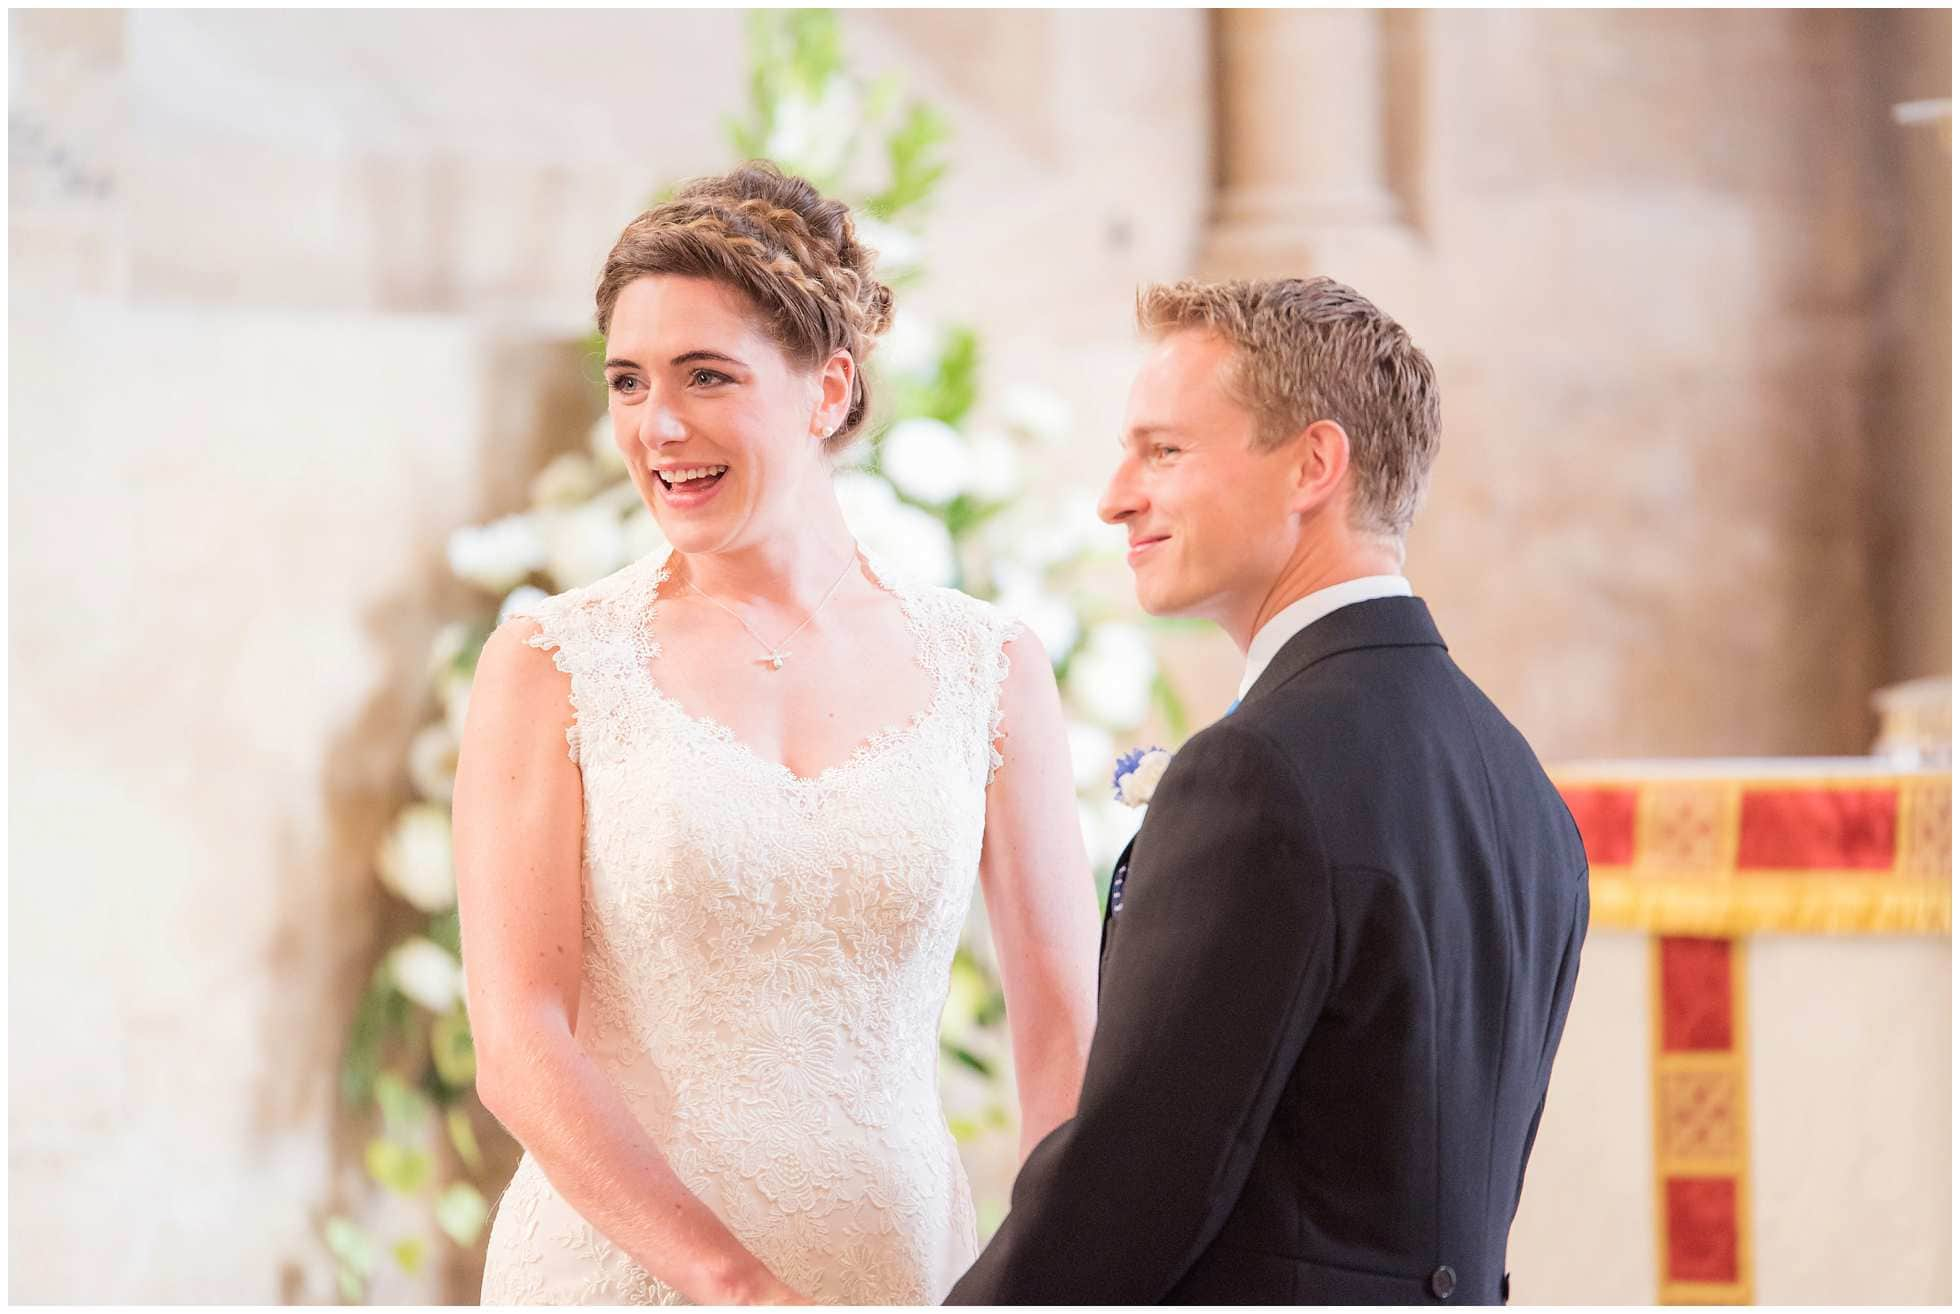 A happy bride and groom at Christ Church College Cathedral Wedding